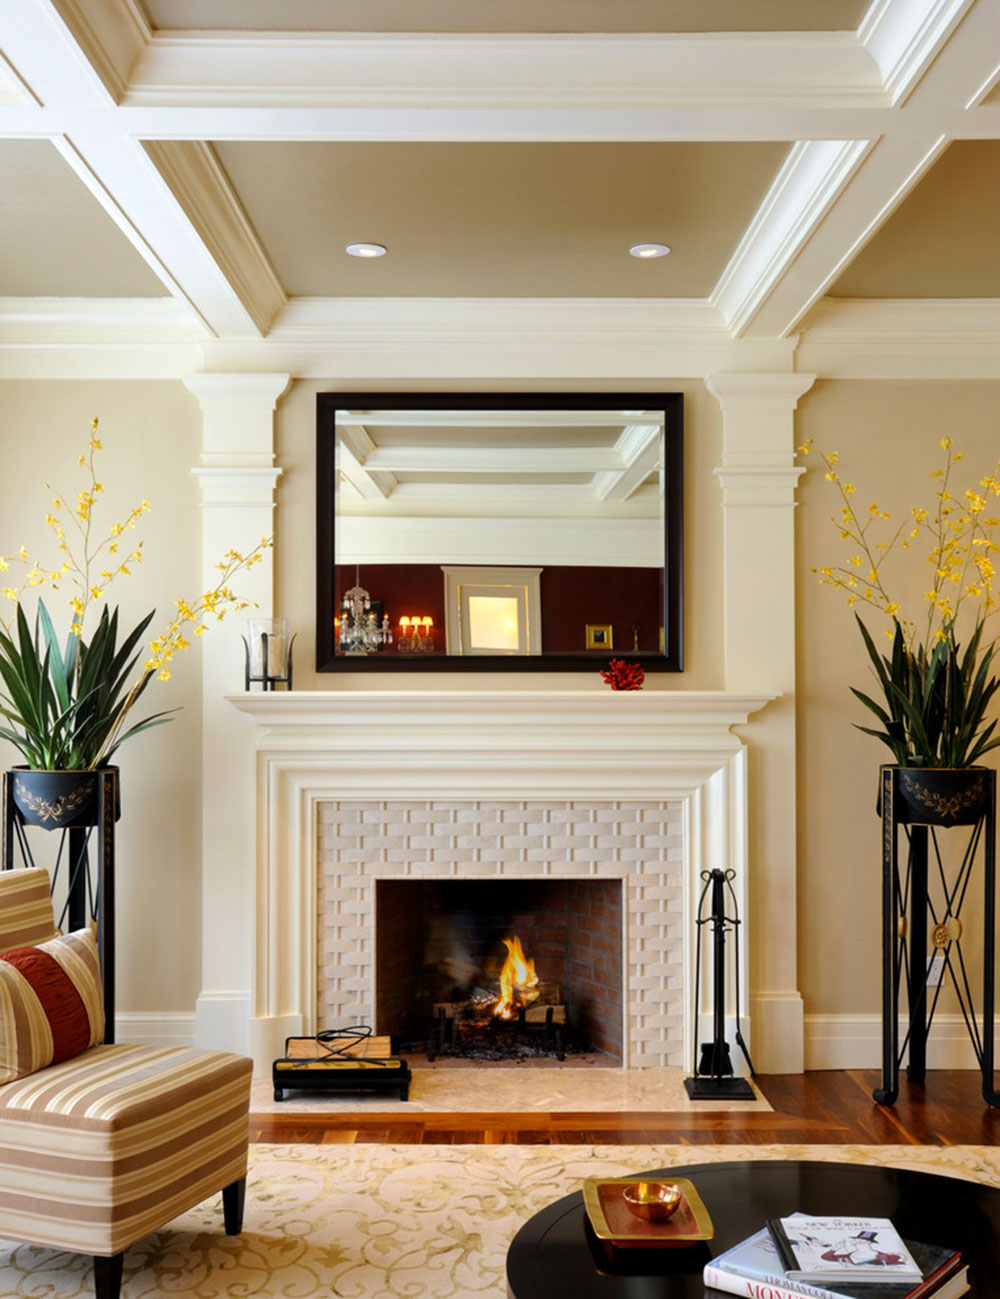 contemporary fireplace surround for warm homes6 modern fireplace tile ideas - Fireplace Tile Design Ideas